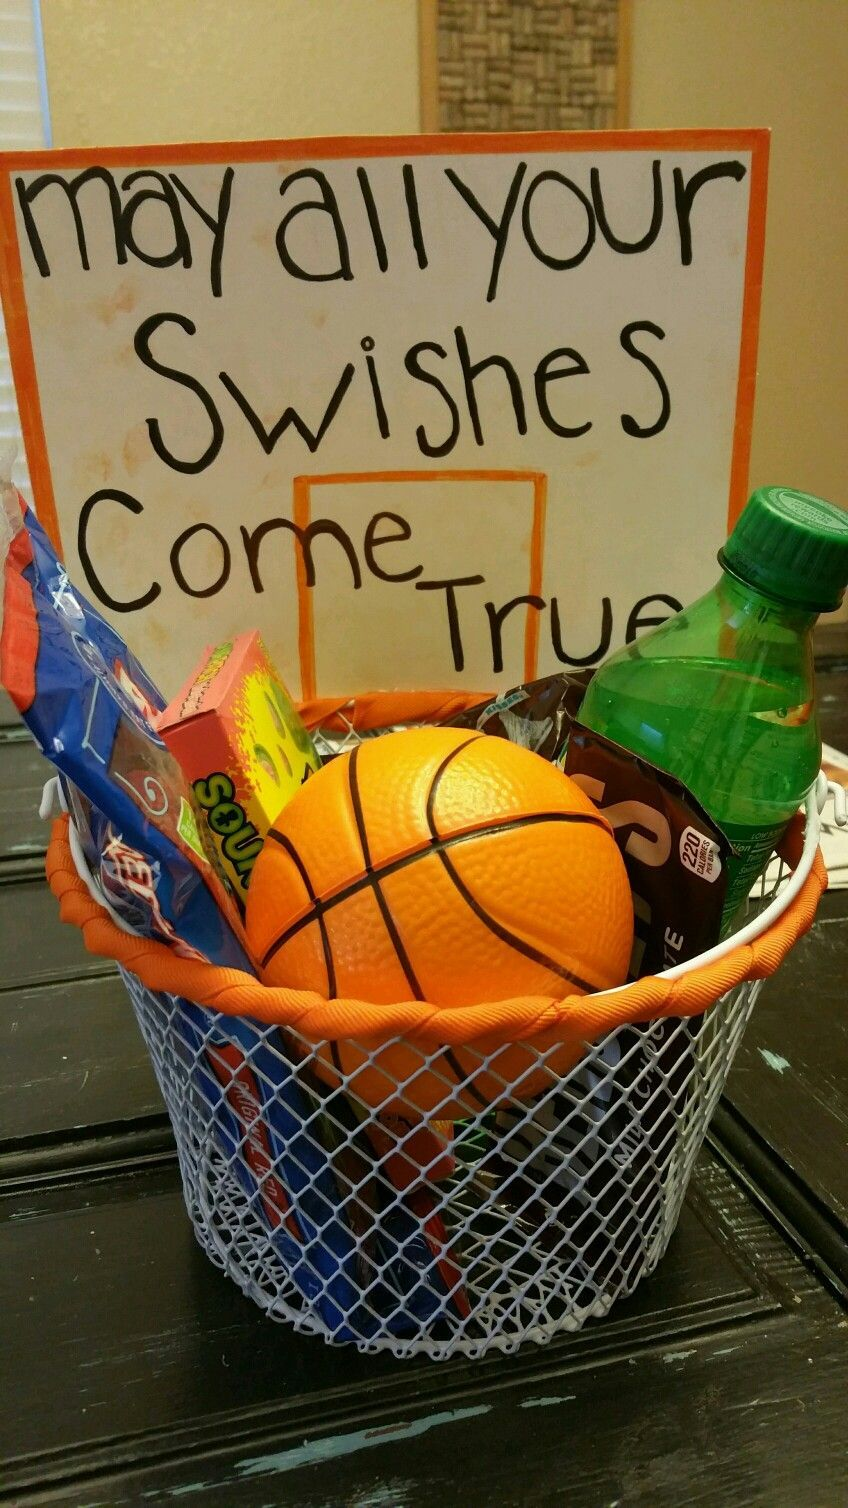 May All Your Swishes Come True Basketball Gift Basket We Found Everything At The Dollar Store For Basketball Gifts Diy Gifts For Boyfriend Senior Night Gifts